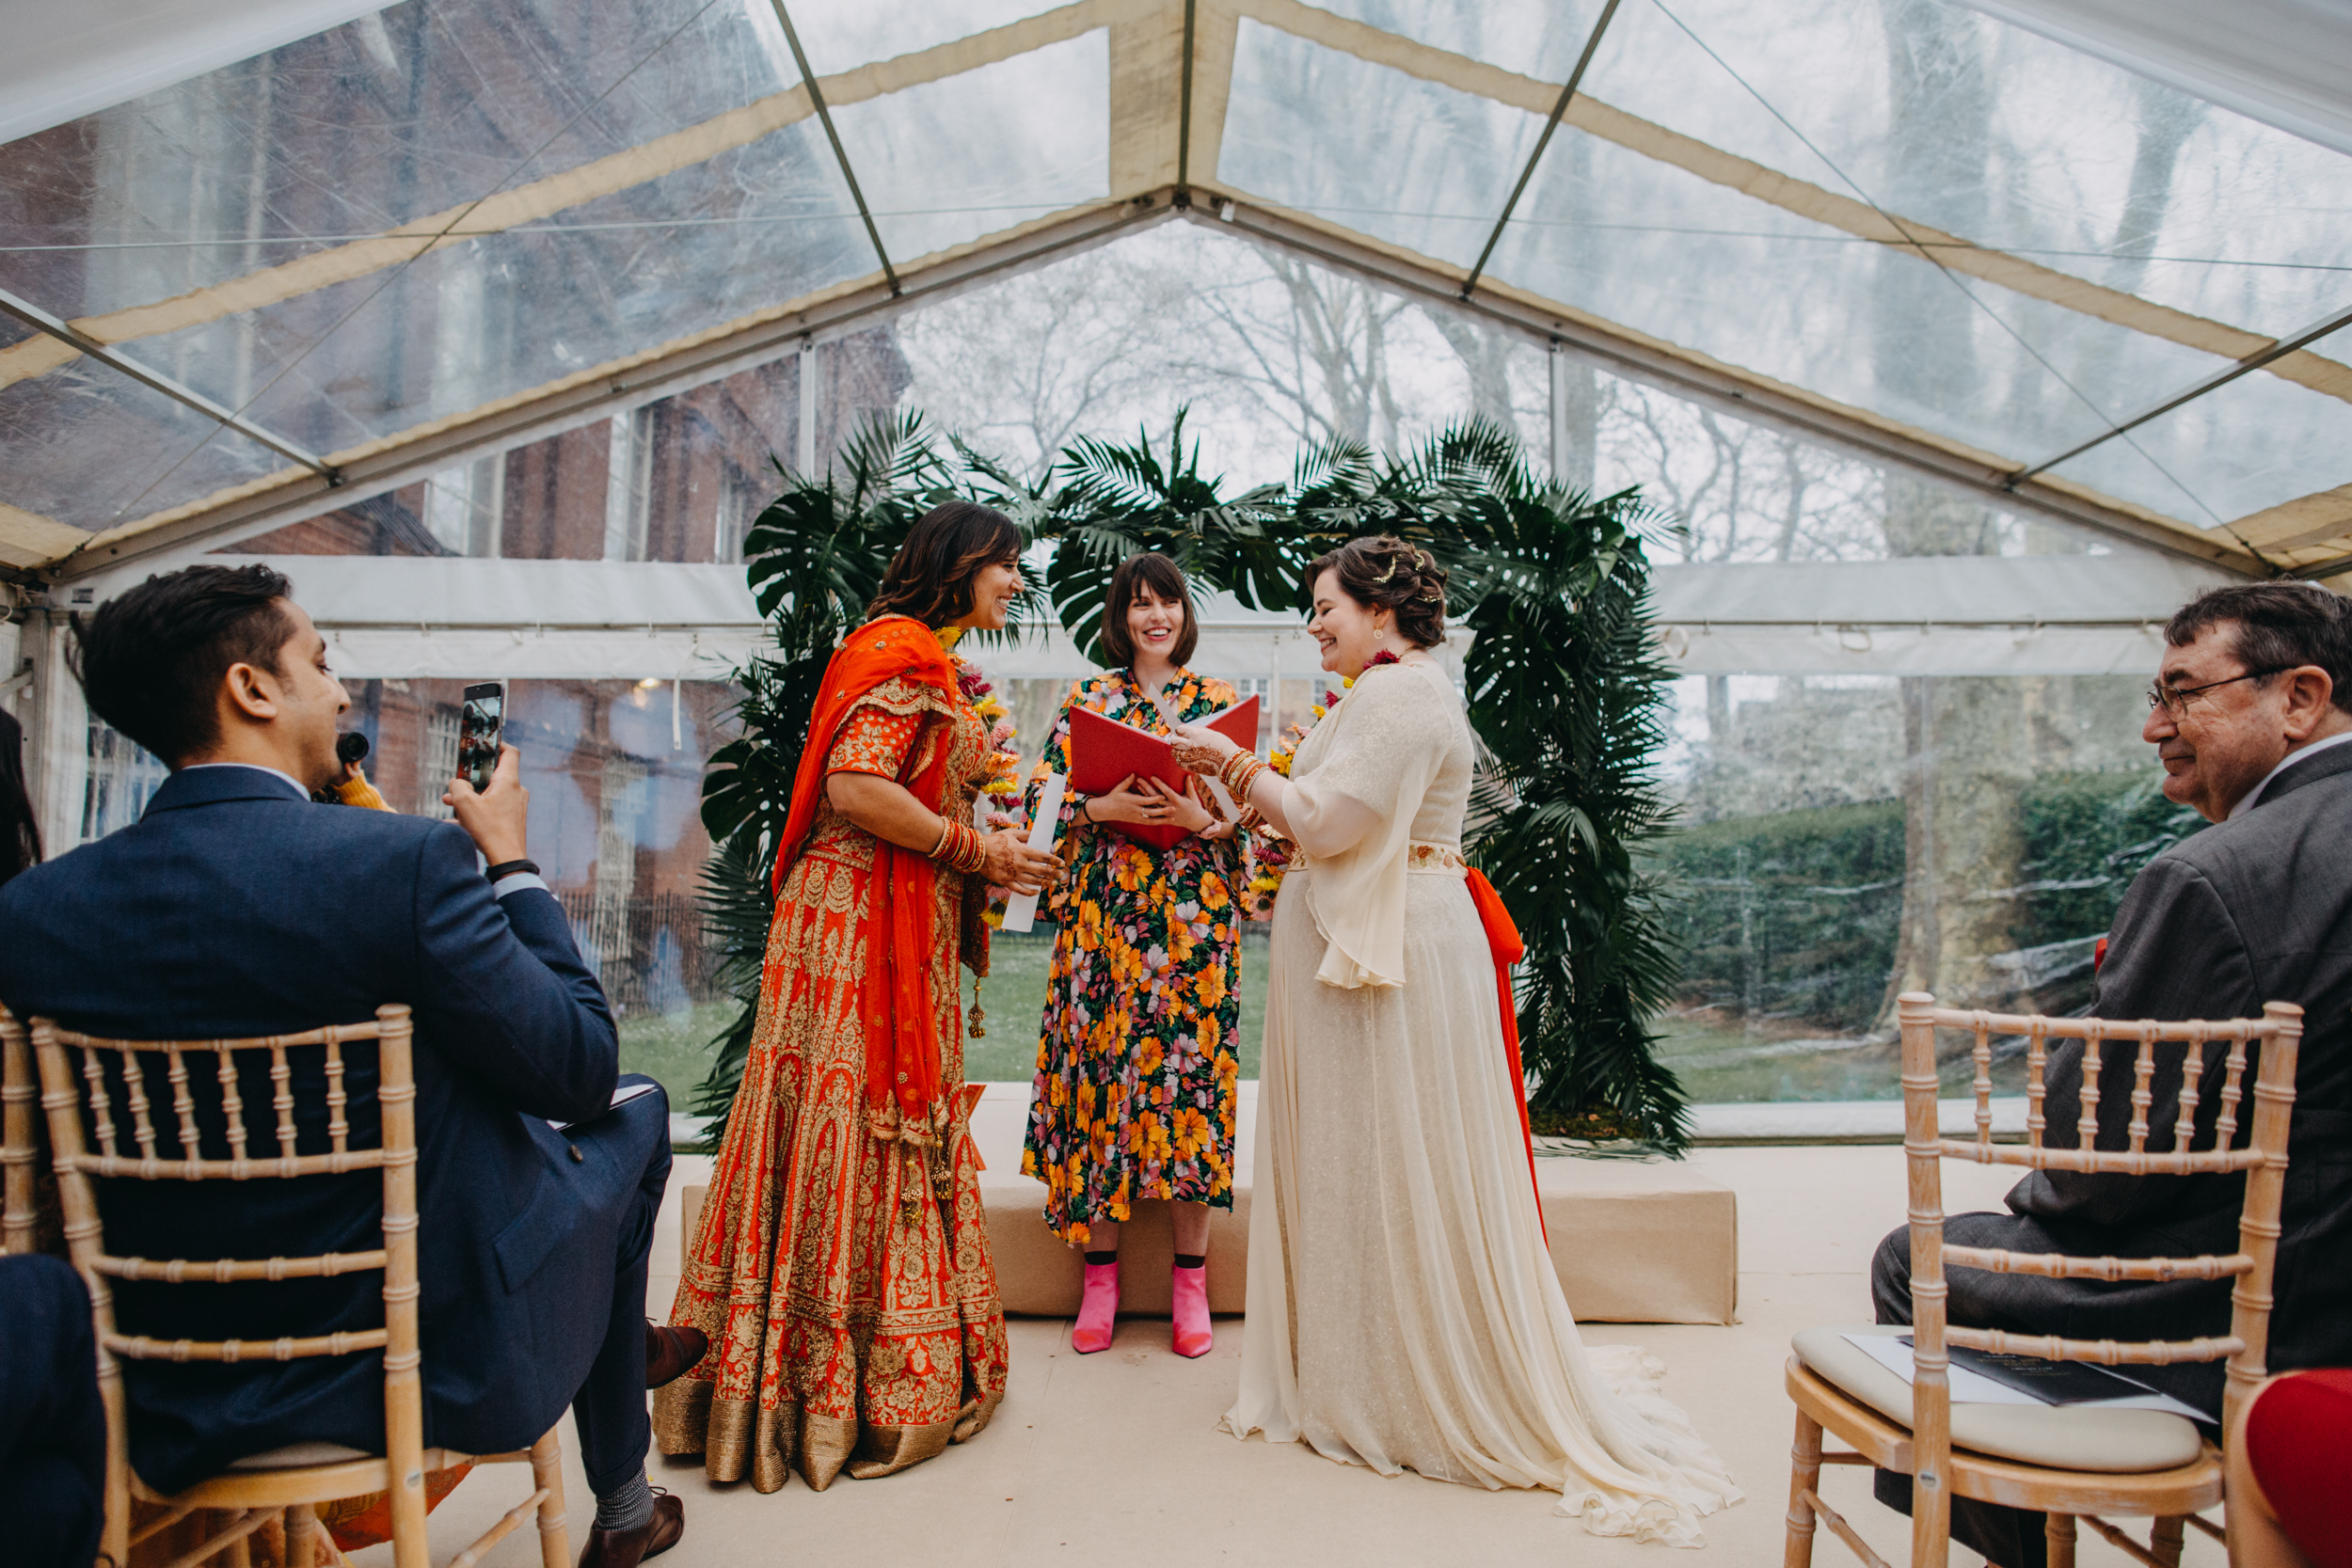 Kirsty and Reshma's humanist wedding ceremony. Image by   Lex Fleming